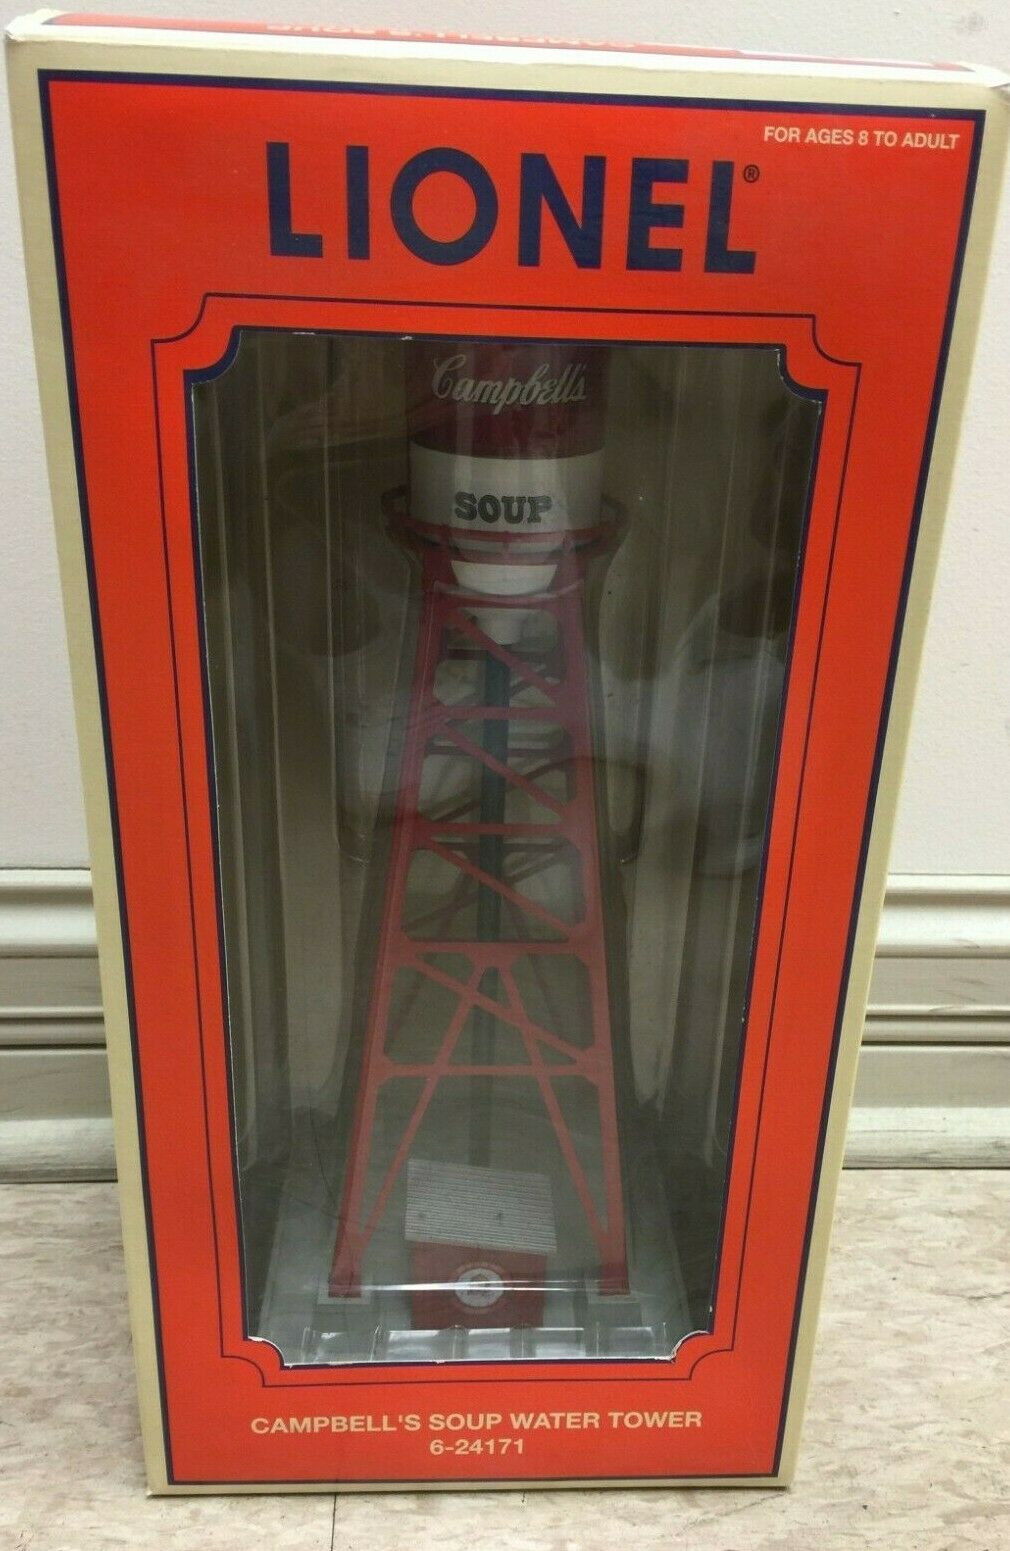 LIONEL CAMPBELL'S SOUP WATER TOWER 624171